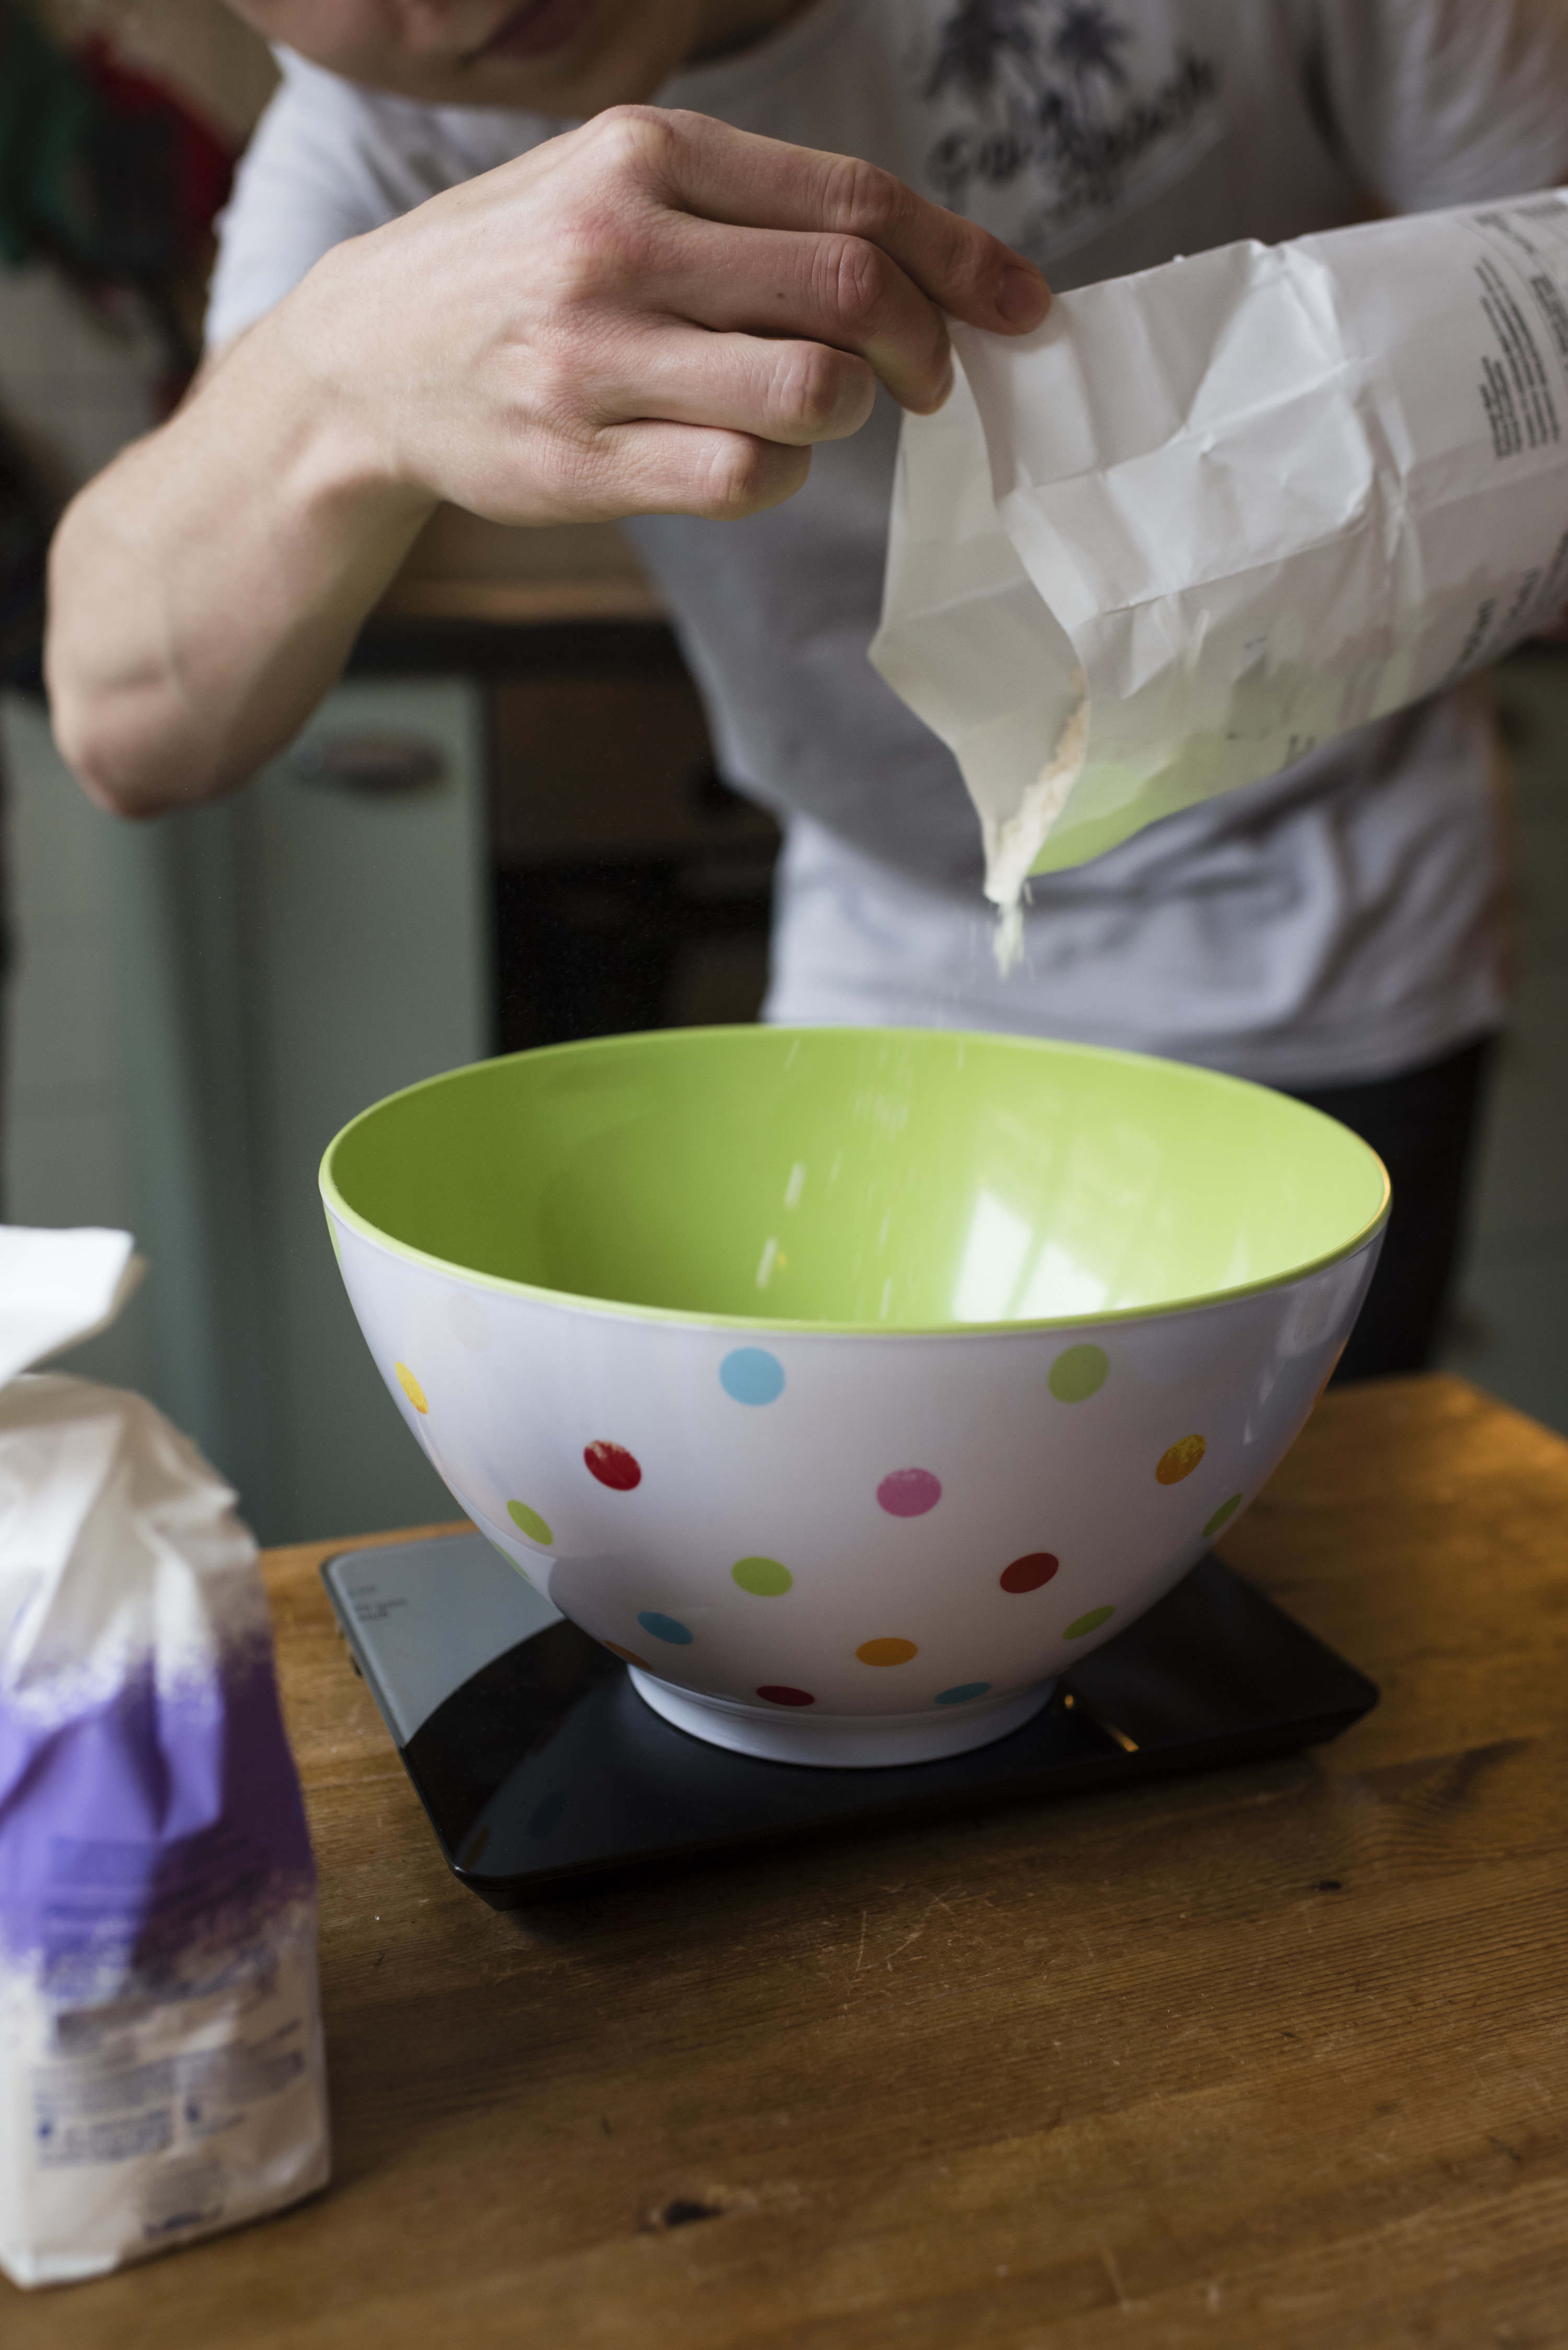 Weighing flour and adding it from a paper bag to a bowl to prepare the cookie dough.